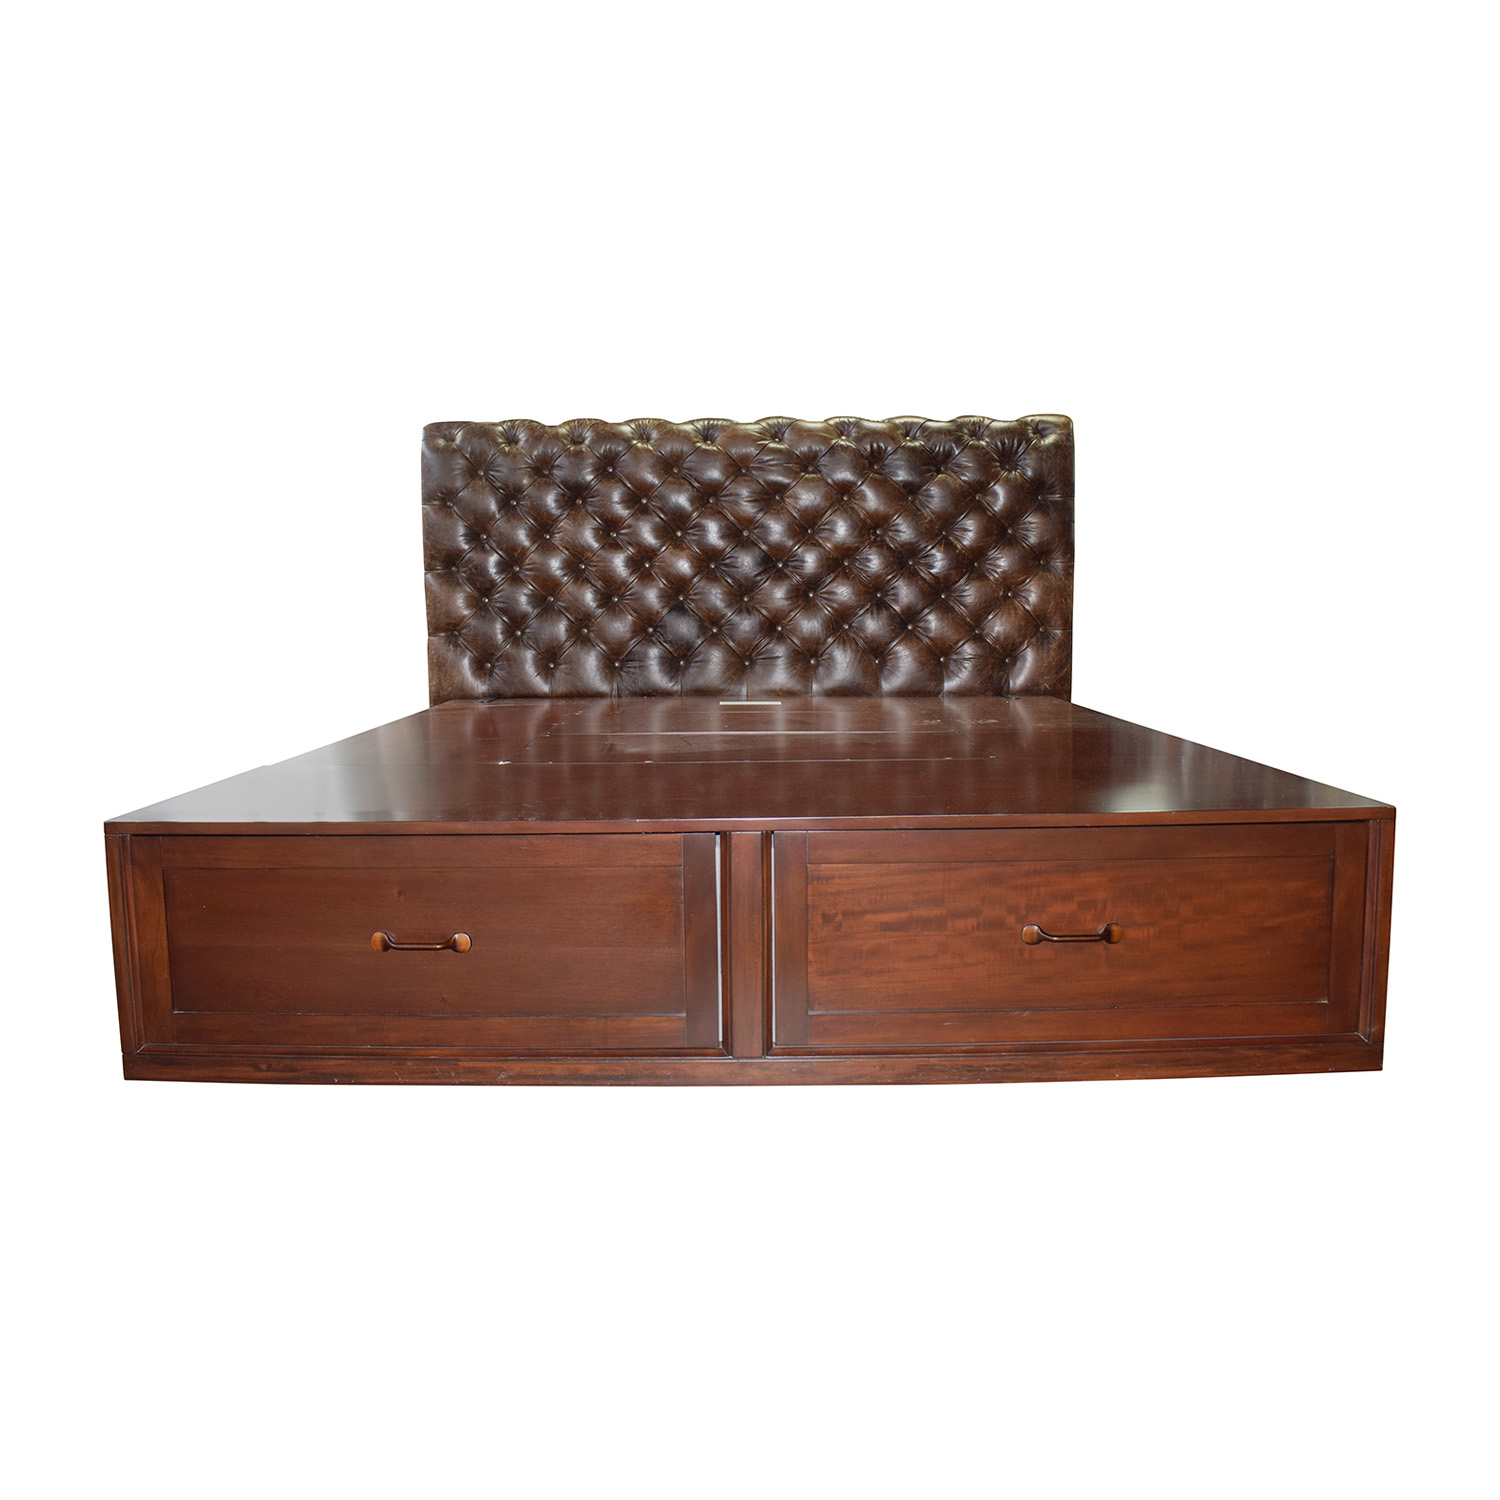 Pottery Barn Stratton Brown Platform King Bed Frame With Storage And Tufted Leather Headboard